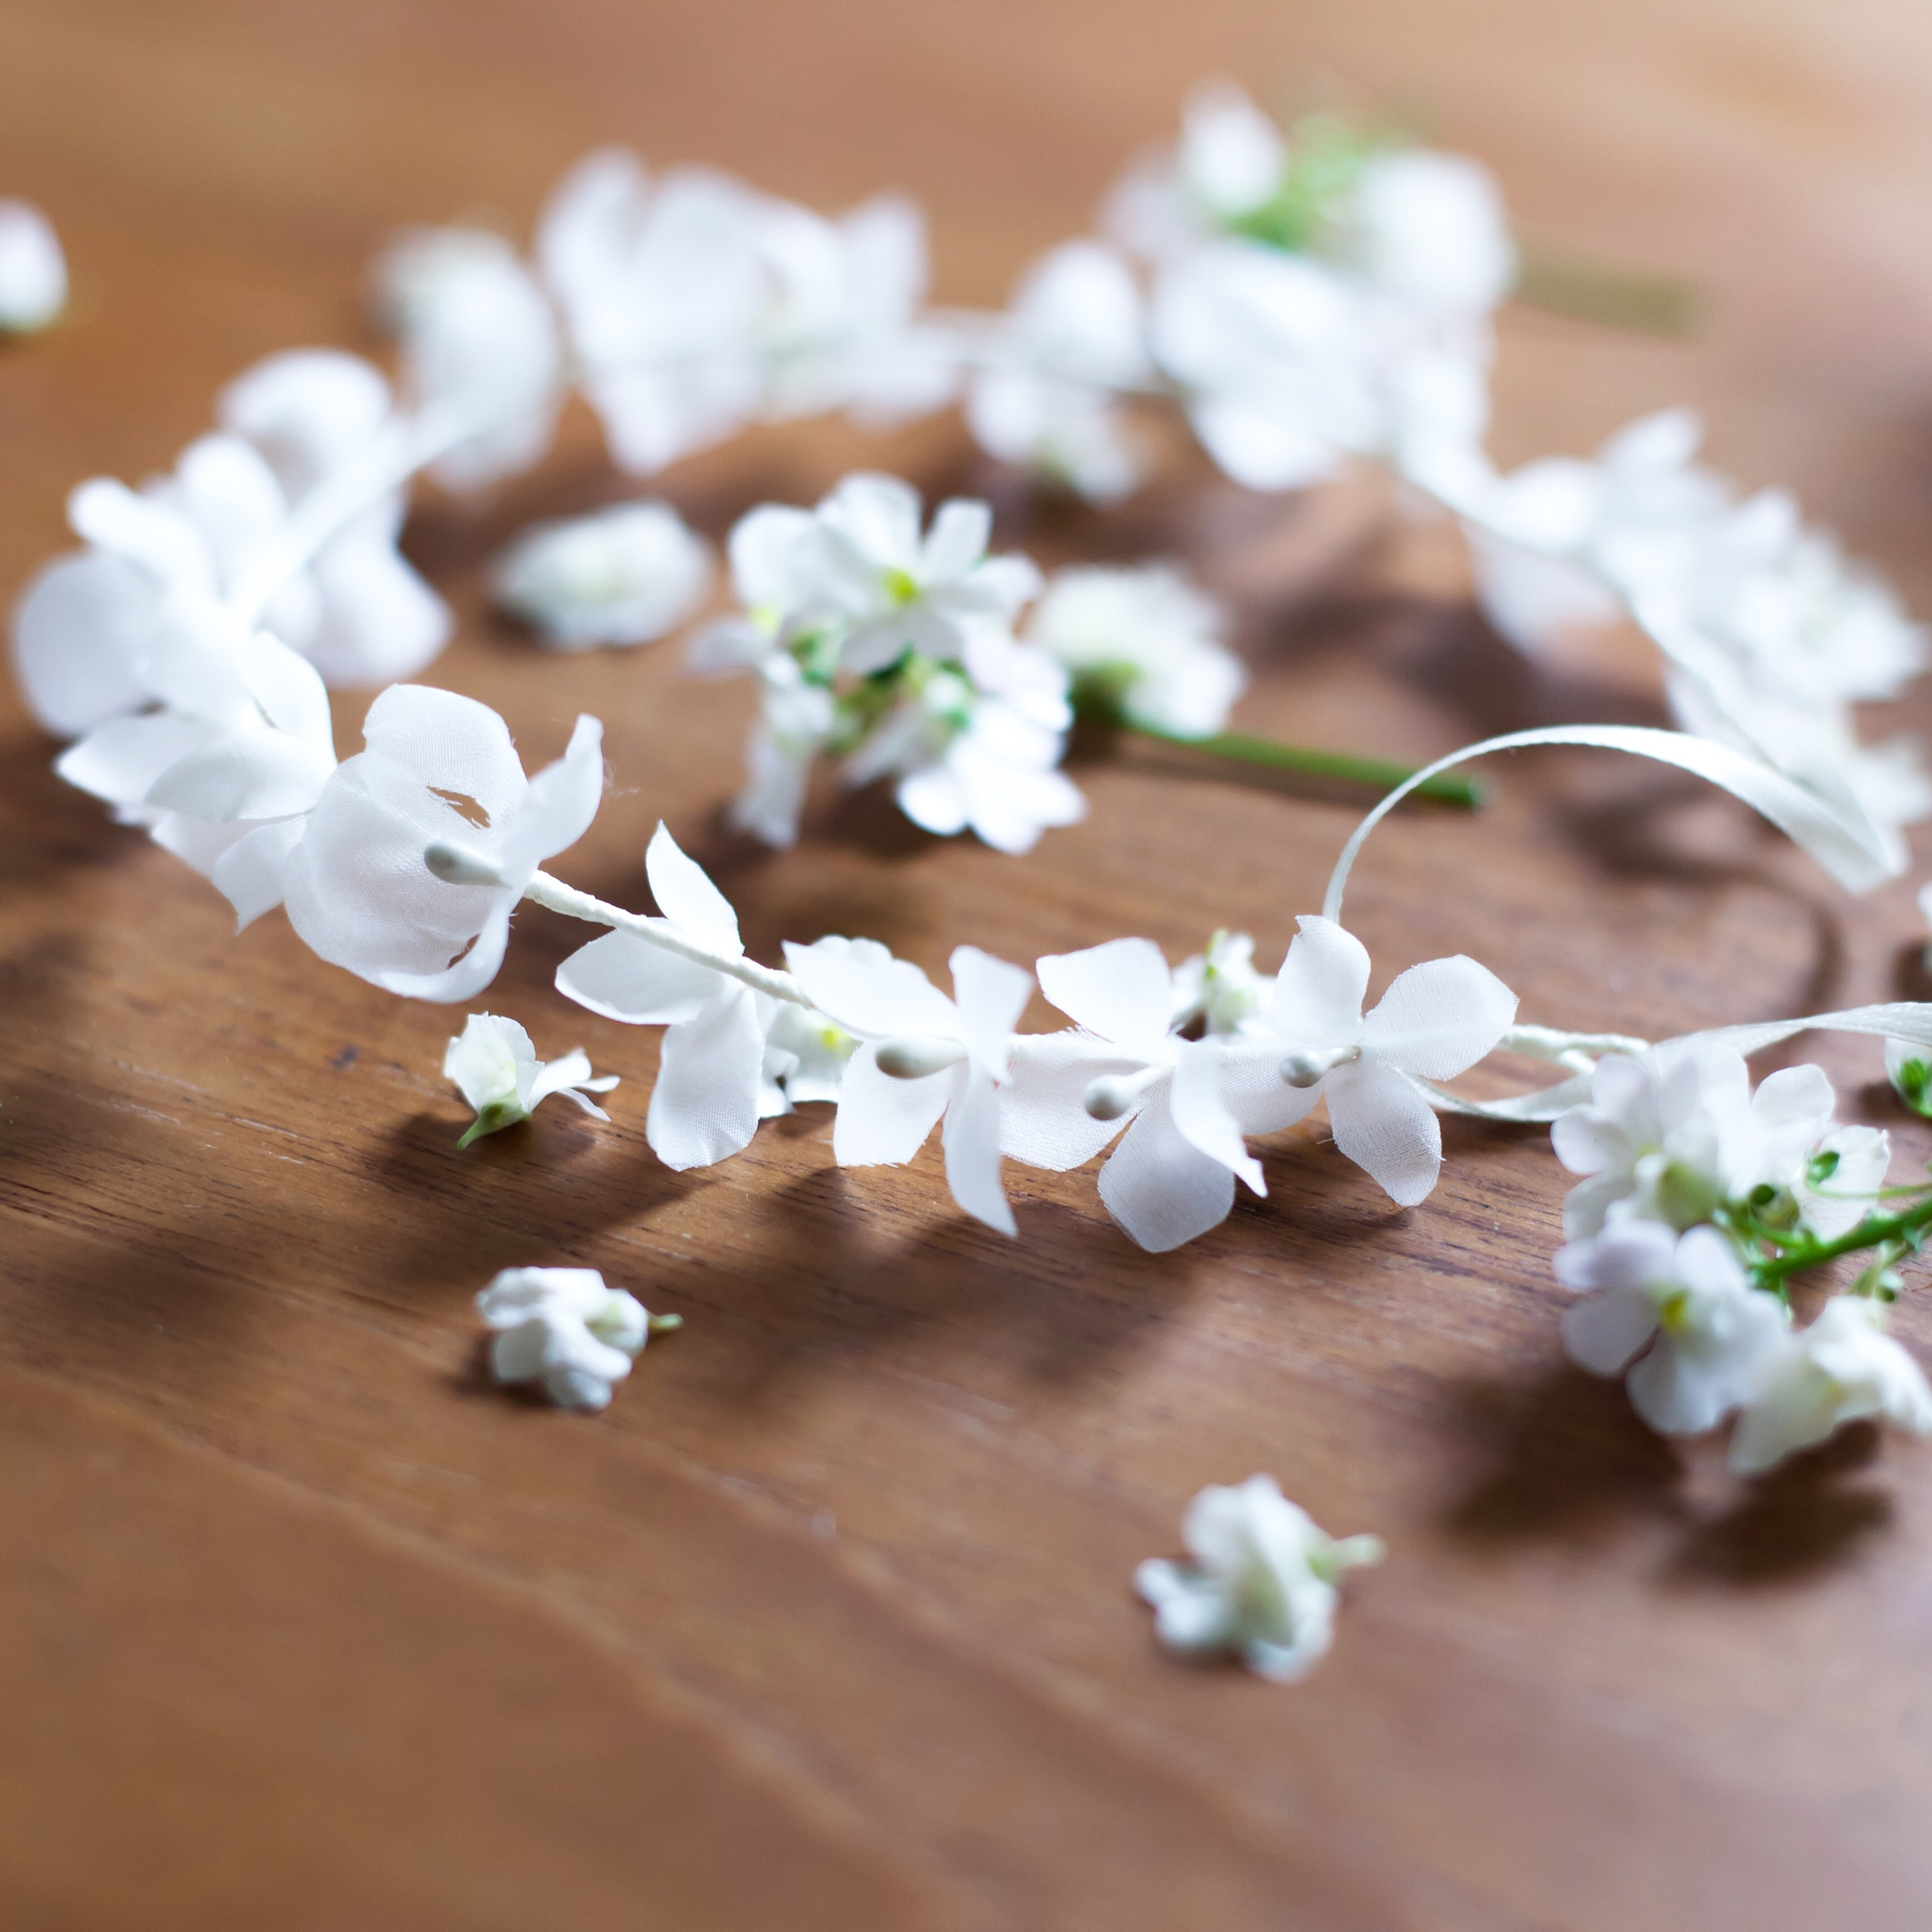 Sneak peek at one of the new pieces - delicate hydrangea silk flower halo for a summer bride